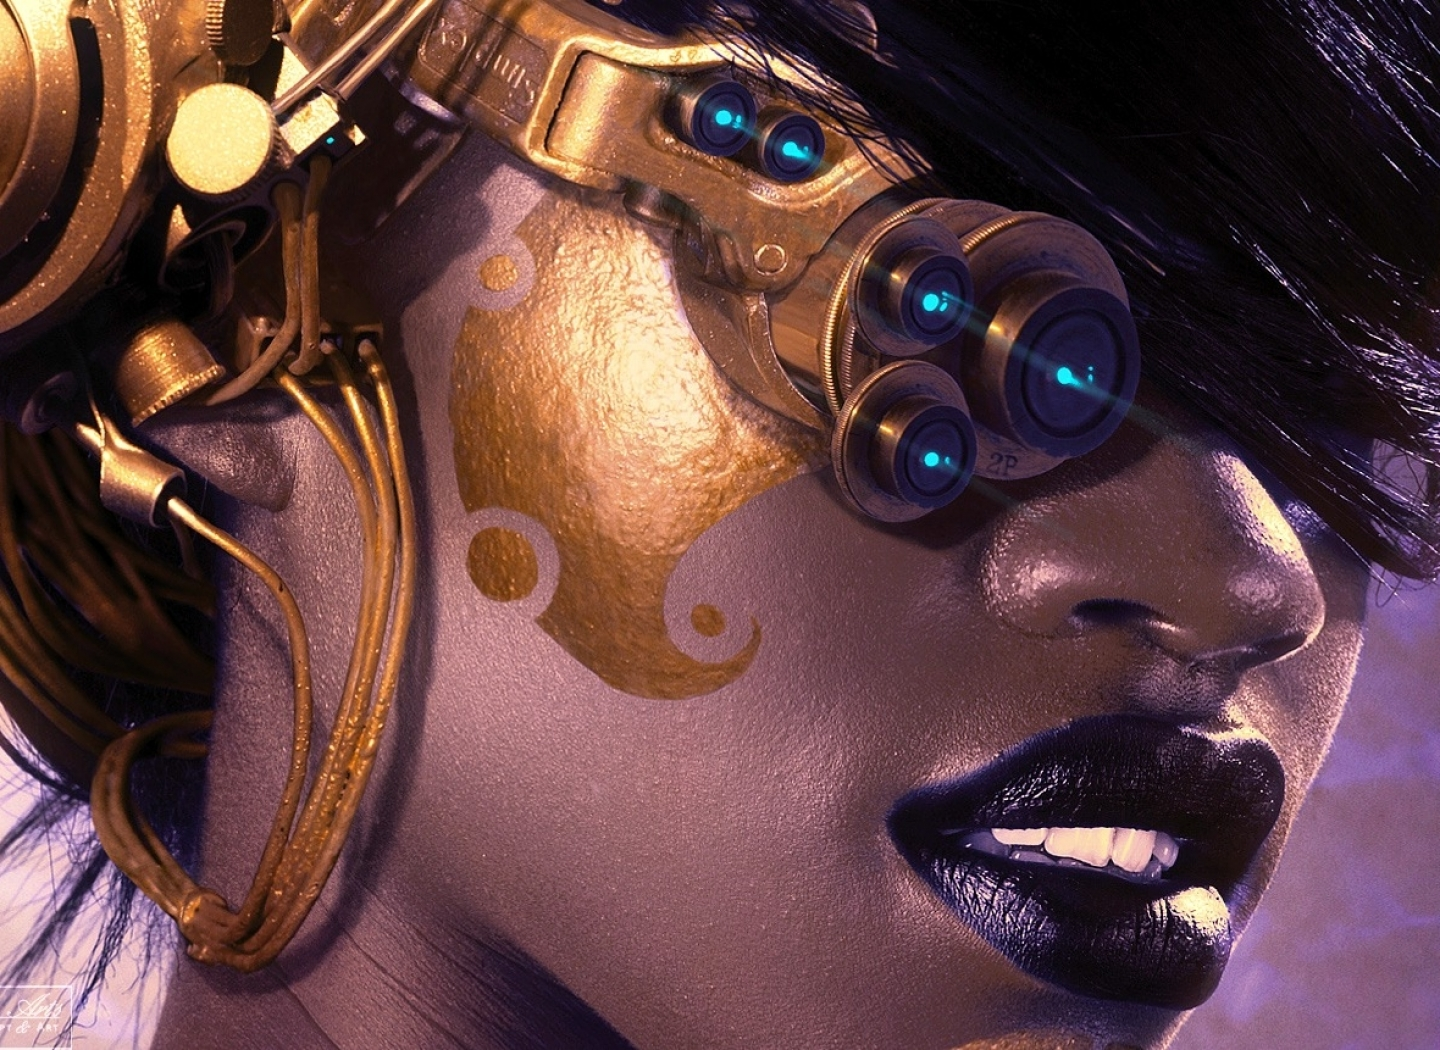 steampunk wallpaper eye - photo #16